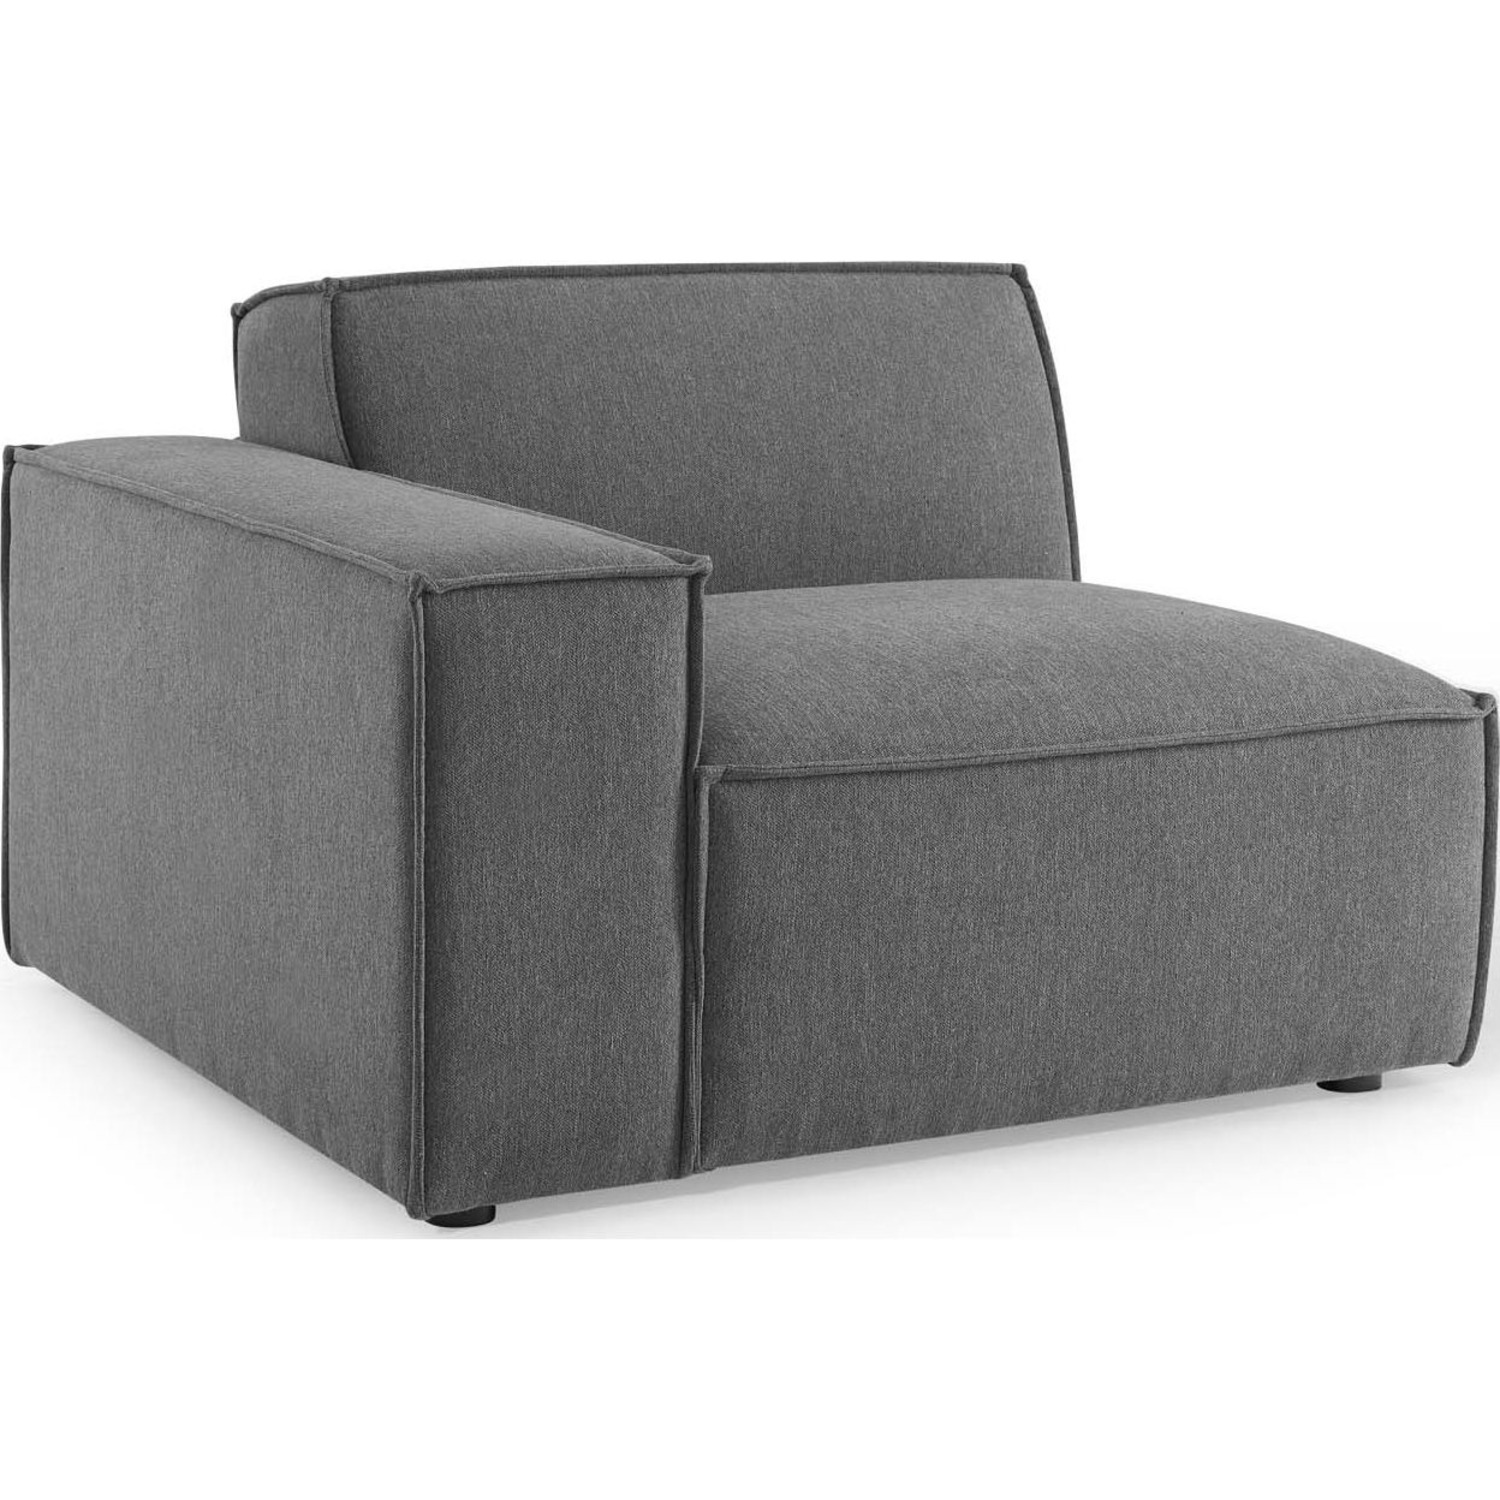 4-Piece Sectional Sofa In Charcoal Foam Padding - image-5